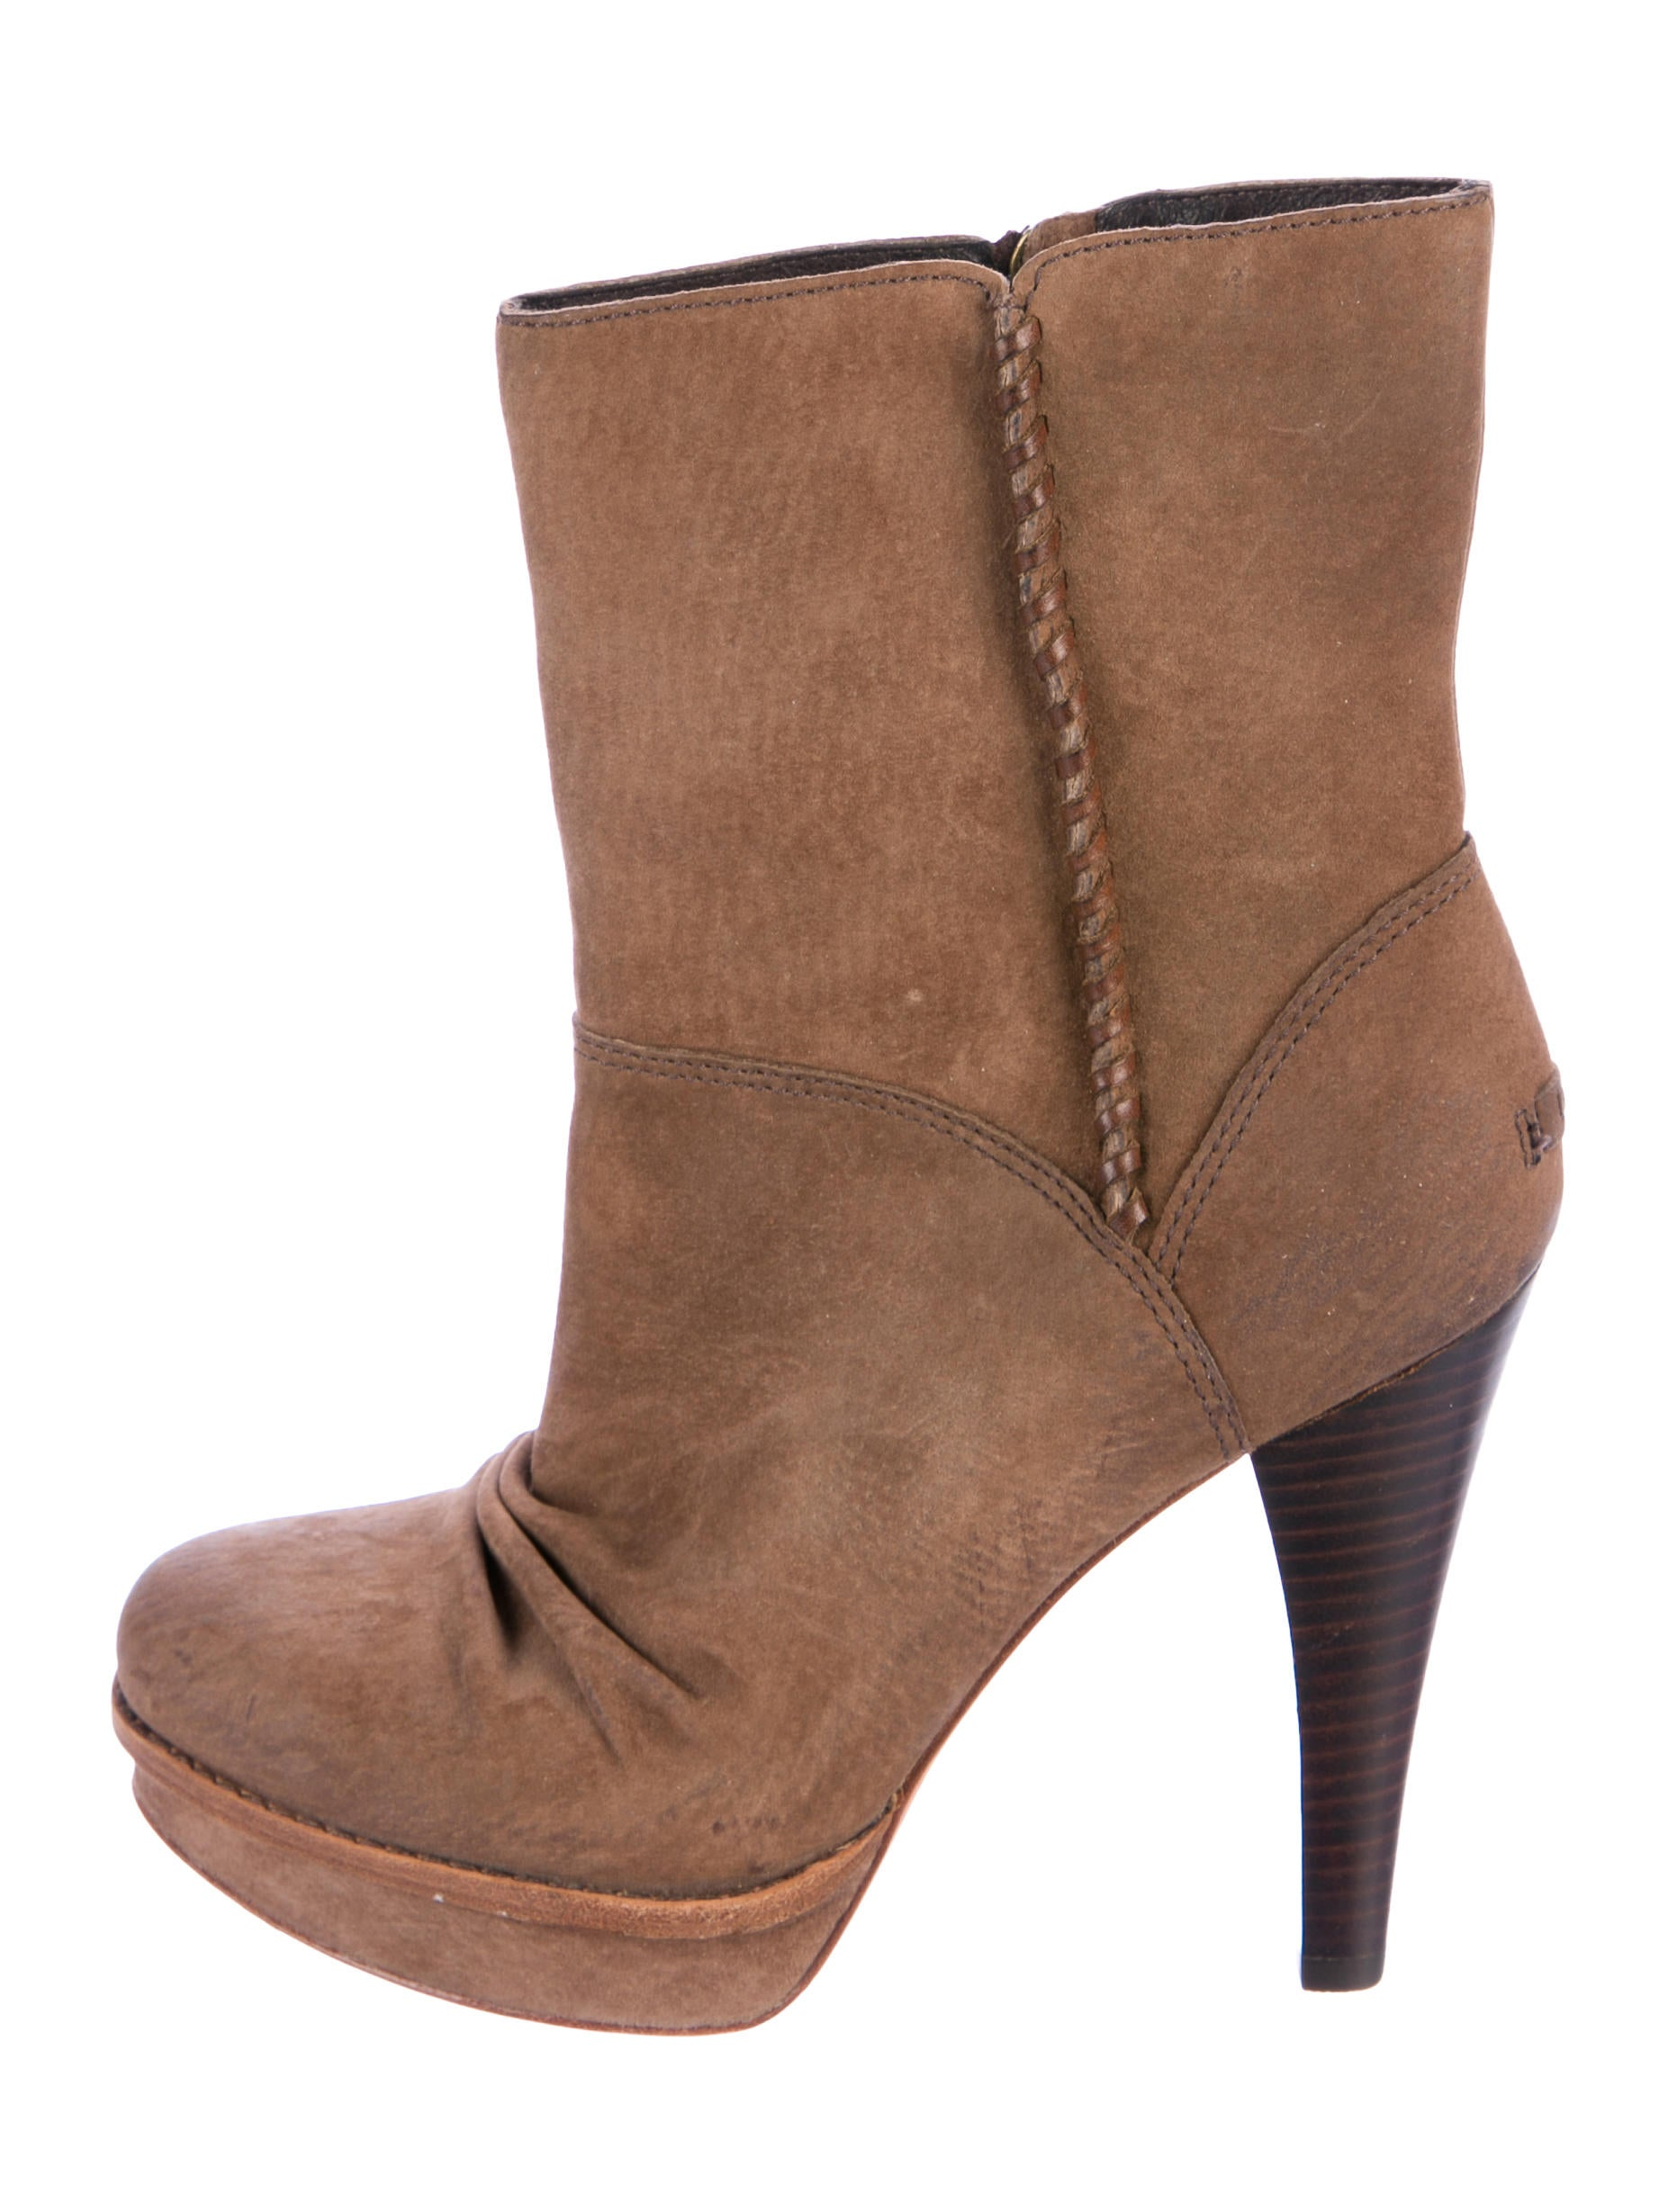 UGG Australia Suede Bianka Booties with credit card cheap price cheap sale for cheap free shipping visit new buy cheap latest hQudlTjF0L